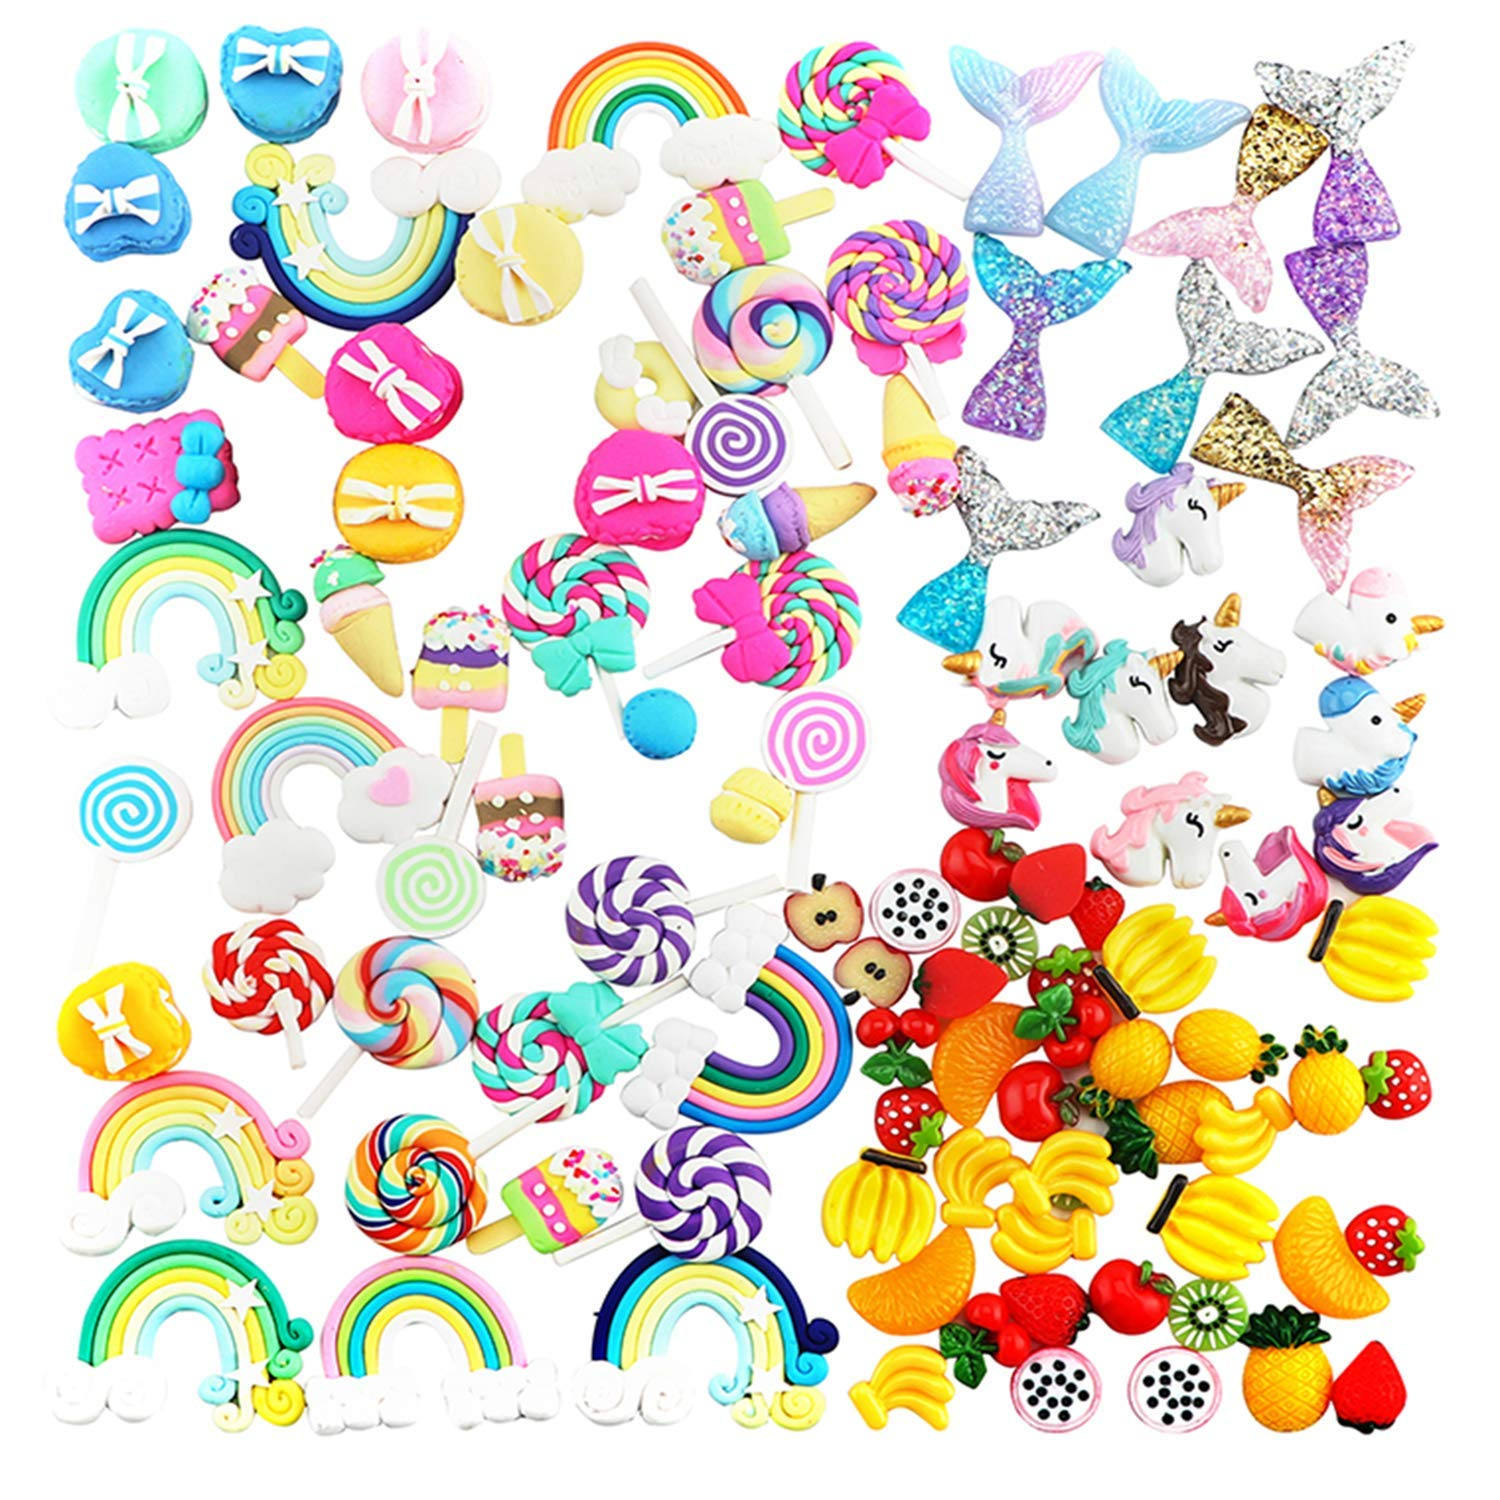 Slime Charms - Mixed Fruits Slime | Sweet Candy Slime | Mermaid Tails Slime | Unicorns Slime | Rainbows Slime Beads Resin Flatback Making Supplies for DIY Scrapbooking Crafts